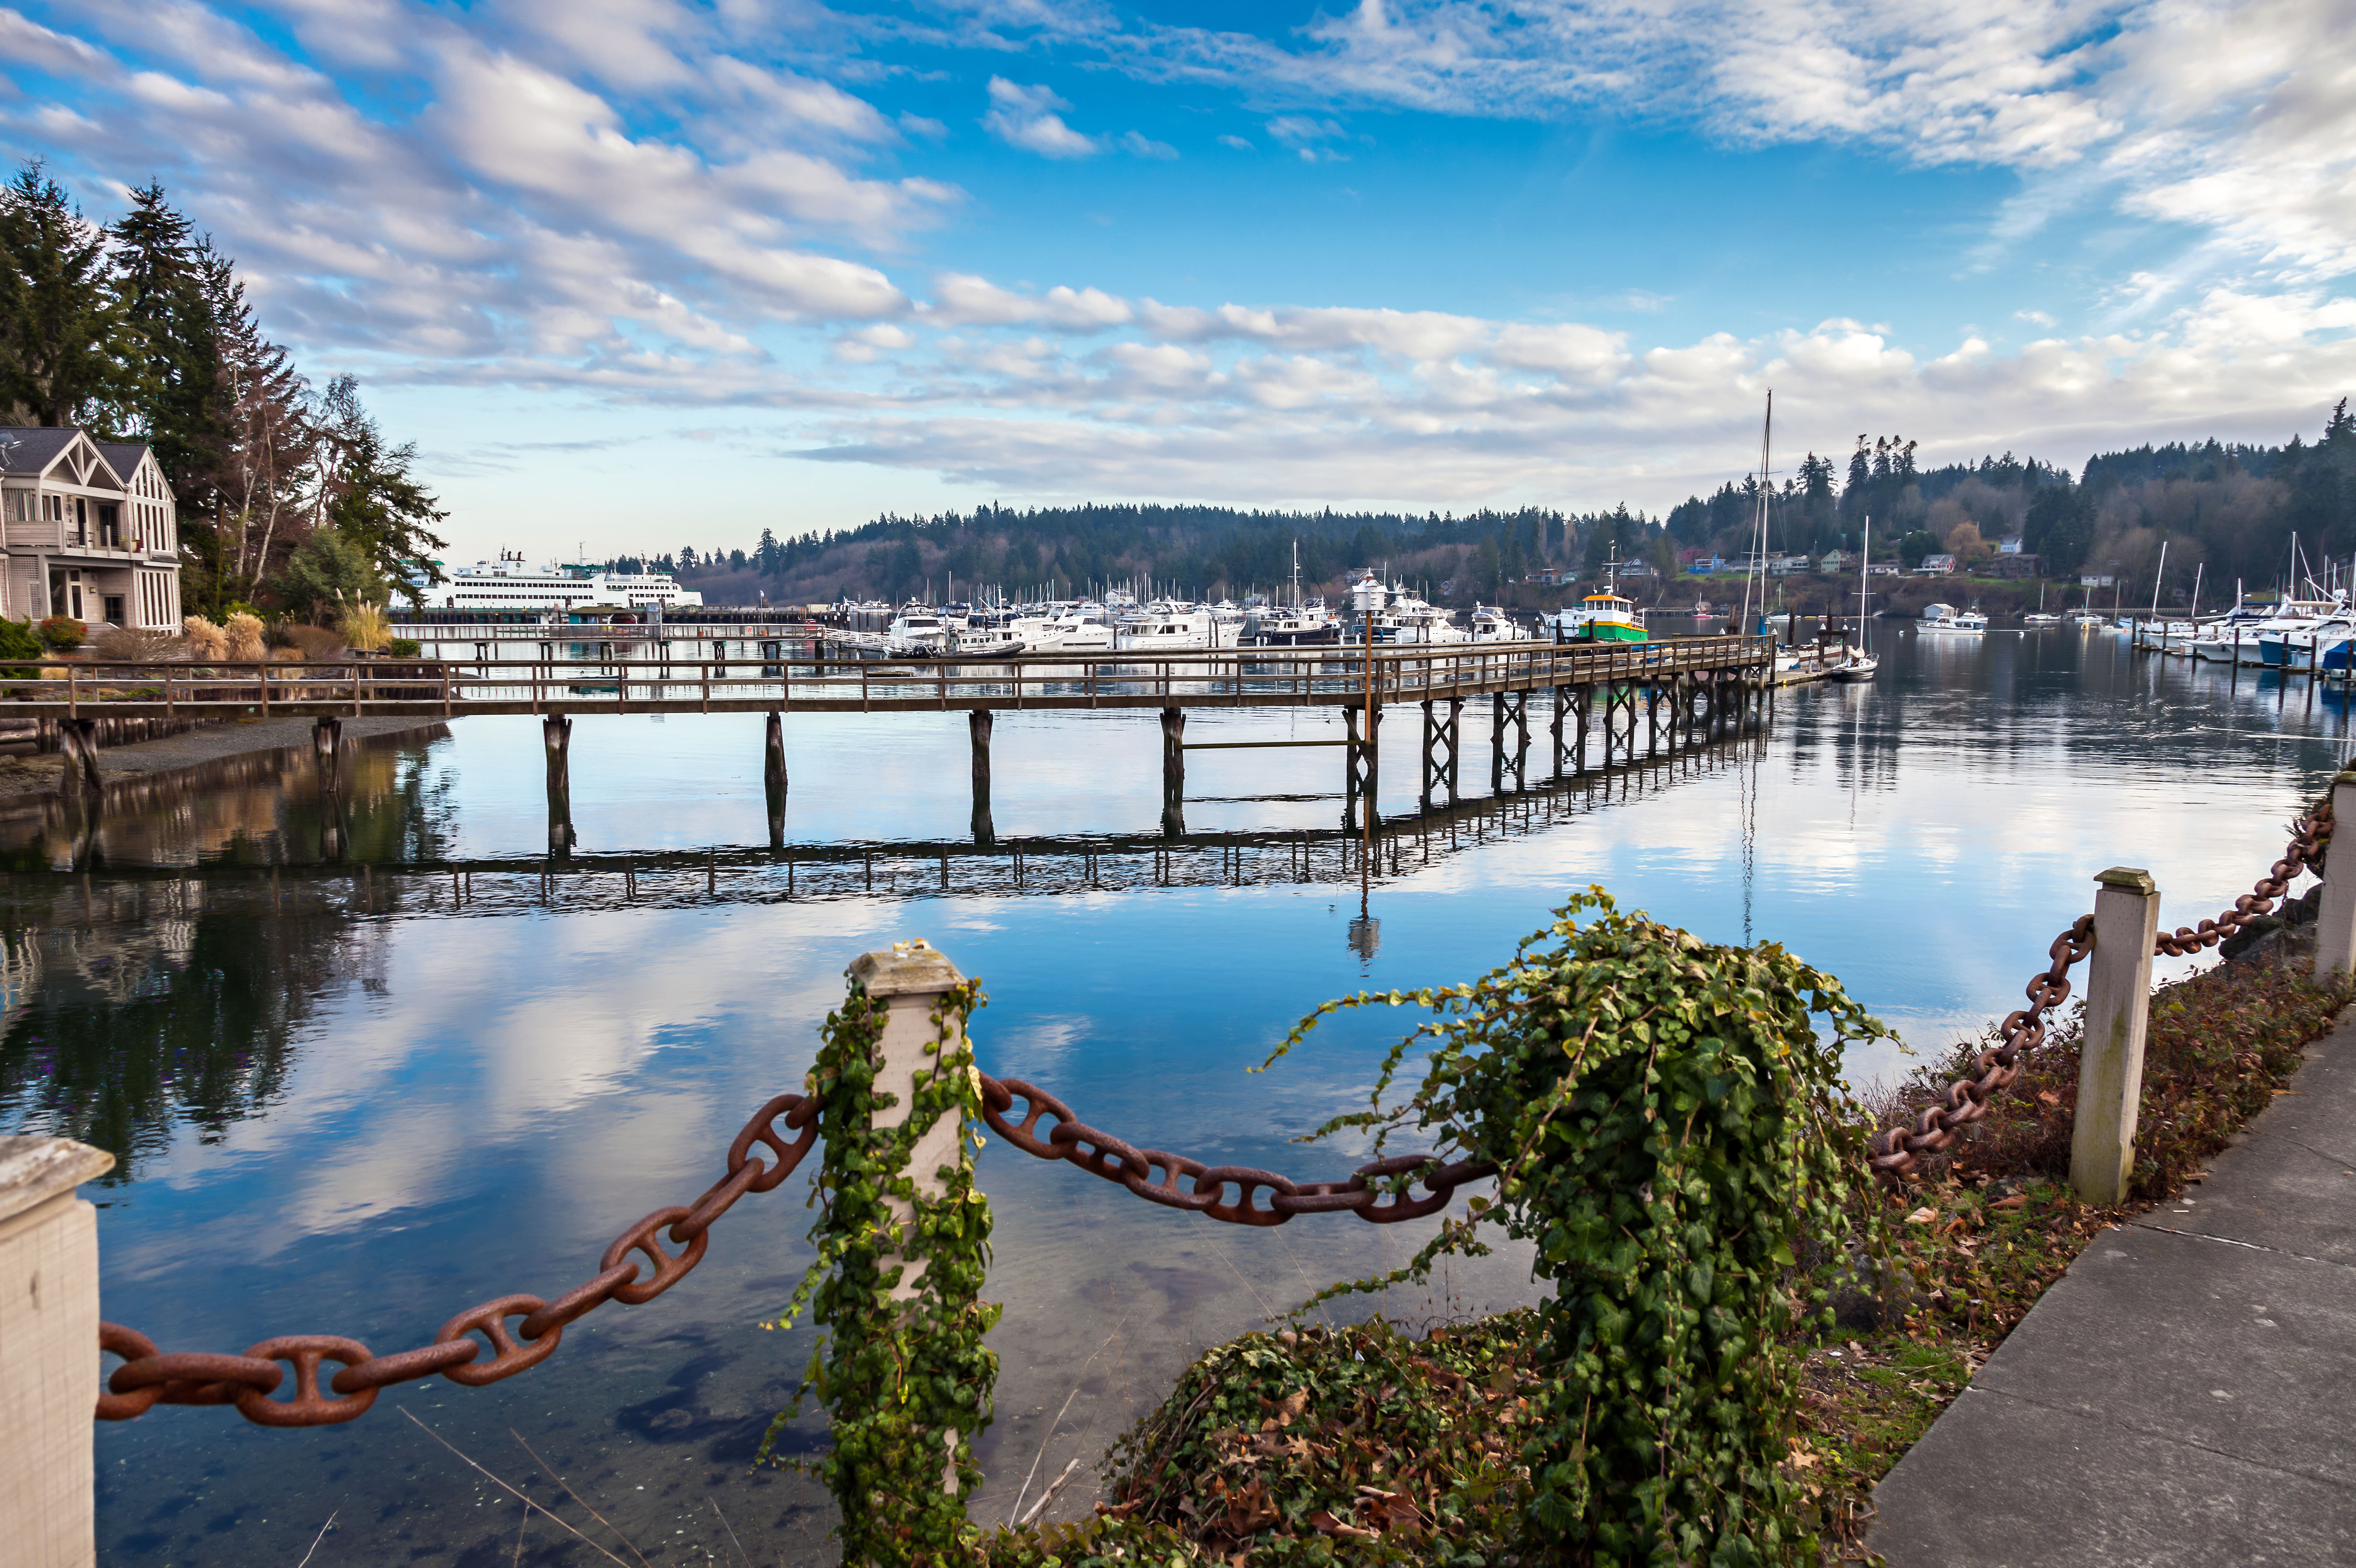 A view of Bainbridge Island, with a small bridge and bay in the foreground, and trees and mountains in the background